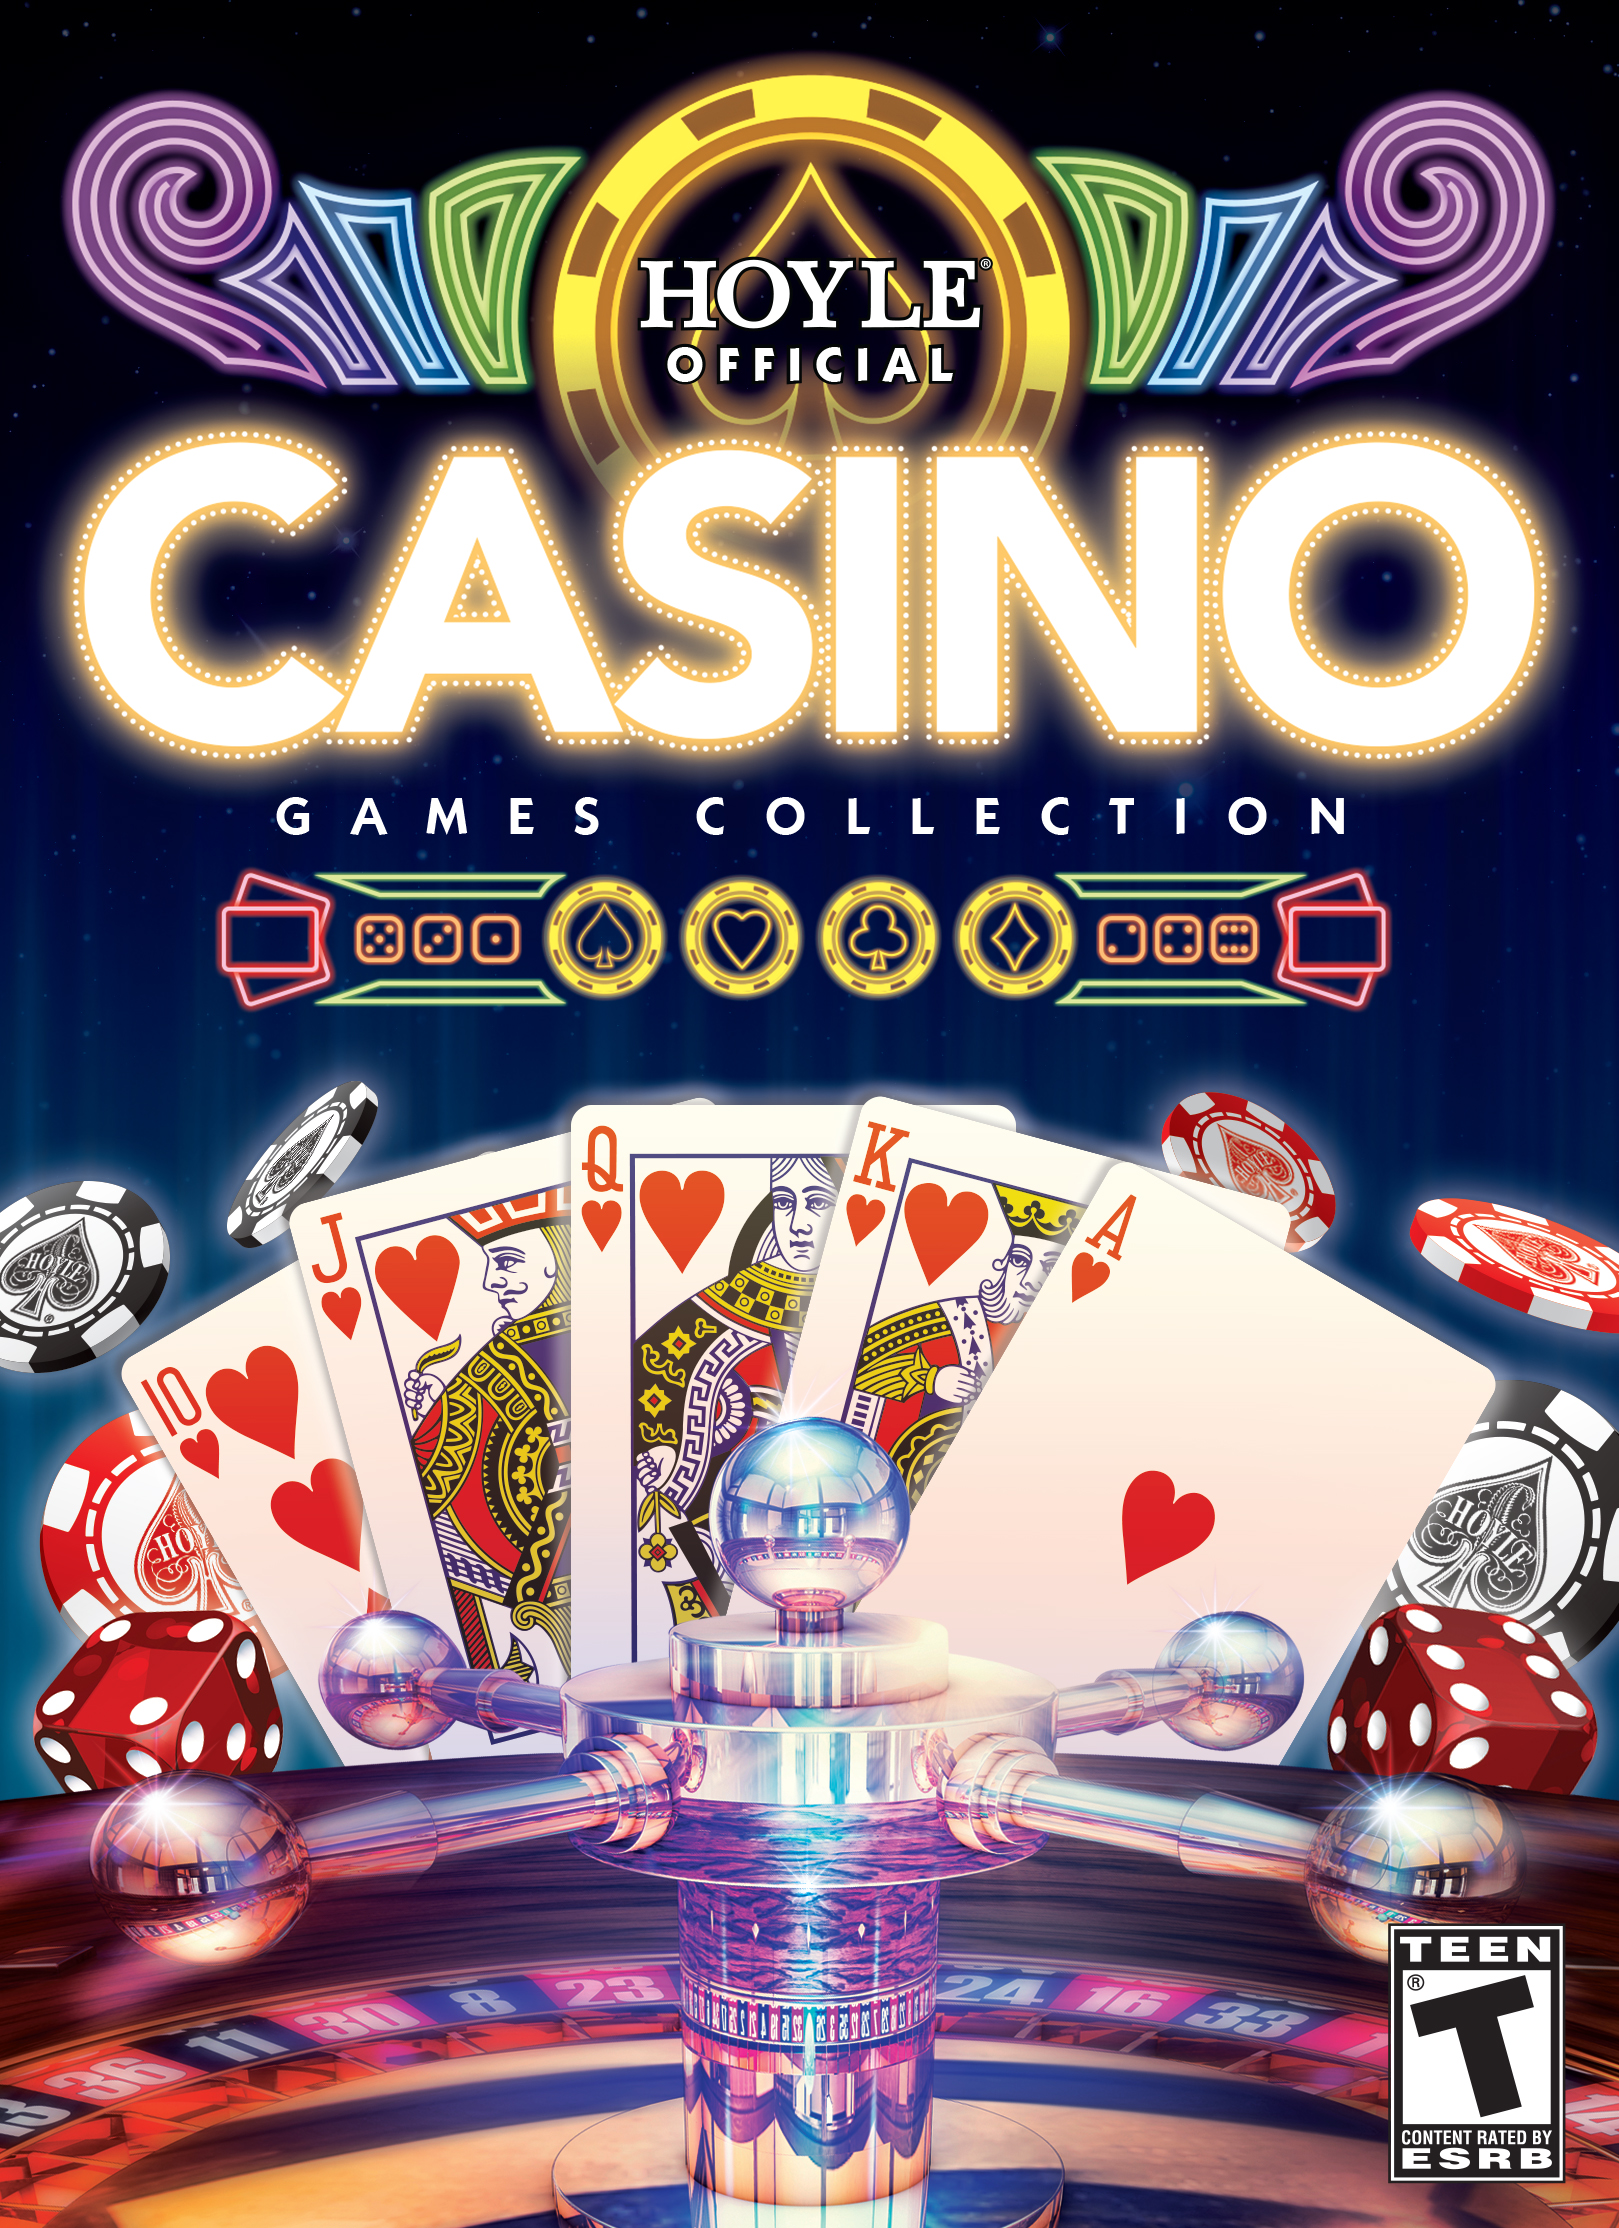 Associated with the Casino genre